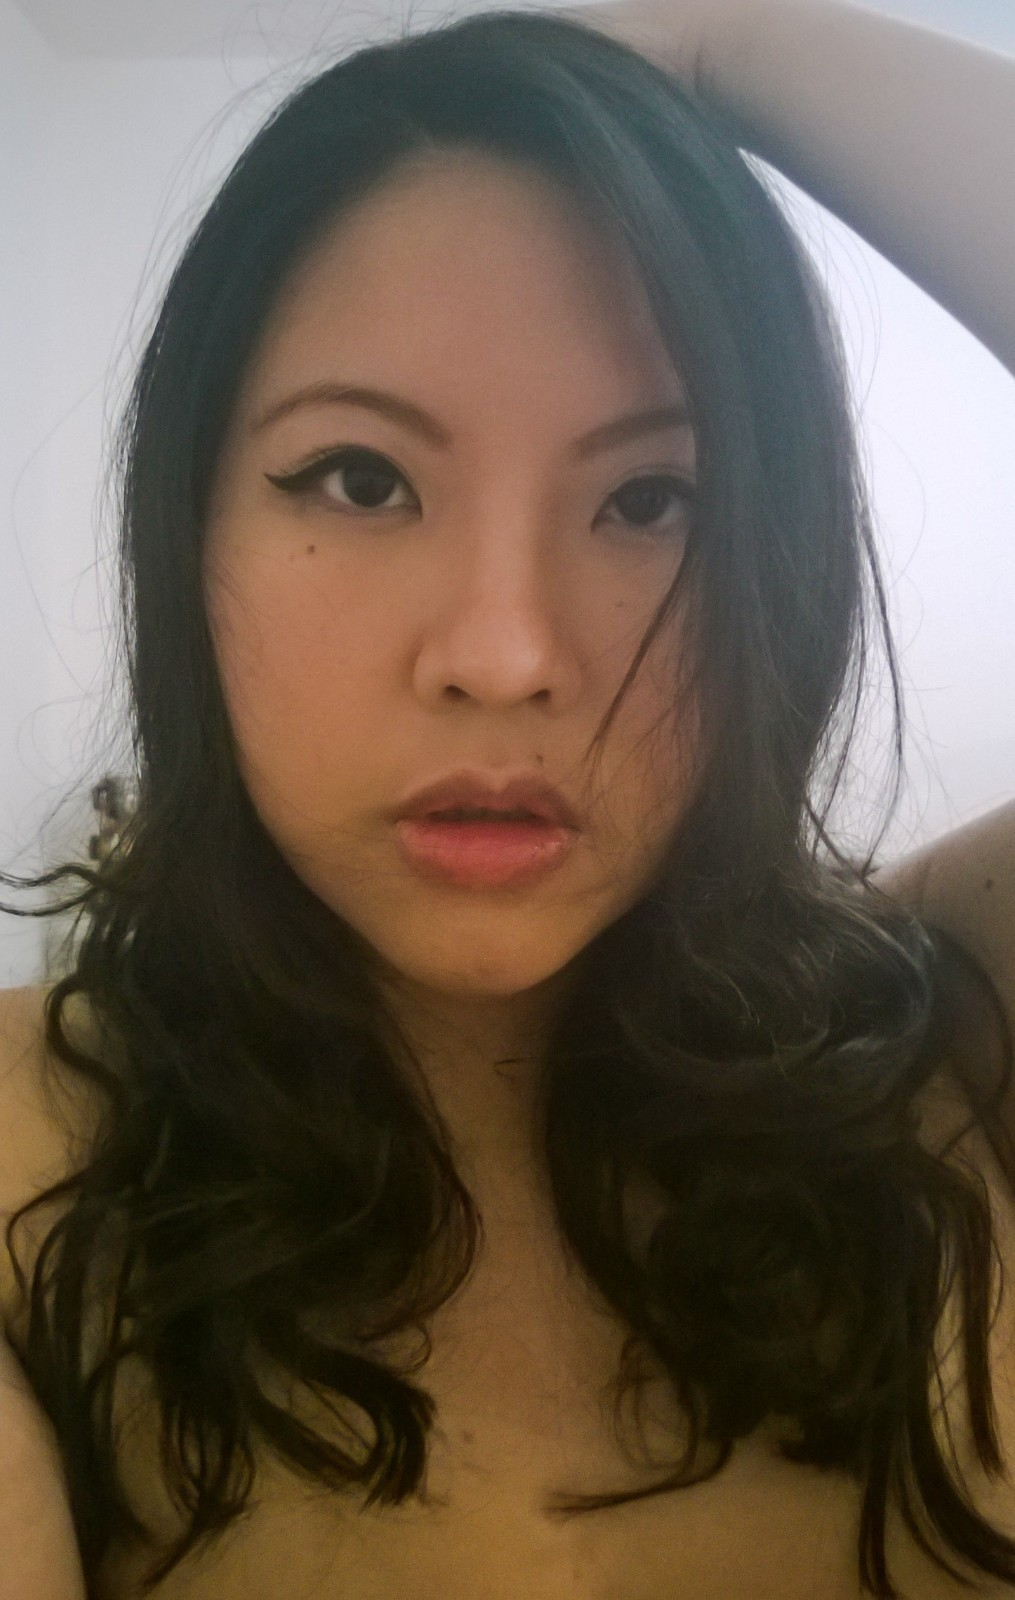 ~!~╲\ | /~~~Asian sexy milf _^^^_ Oral Sex, interested ~╲\ | /!~